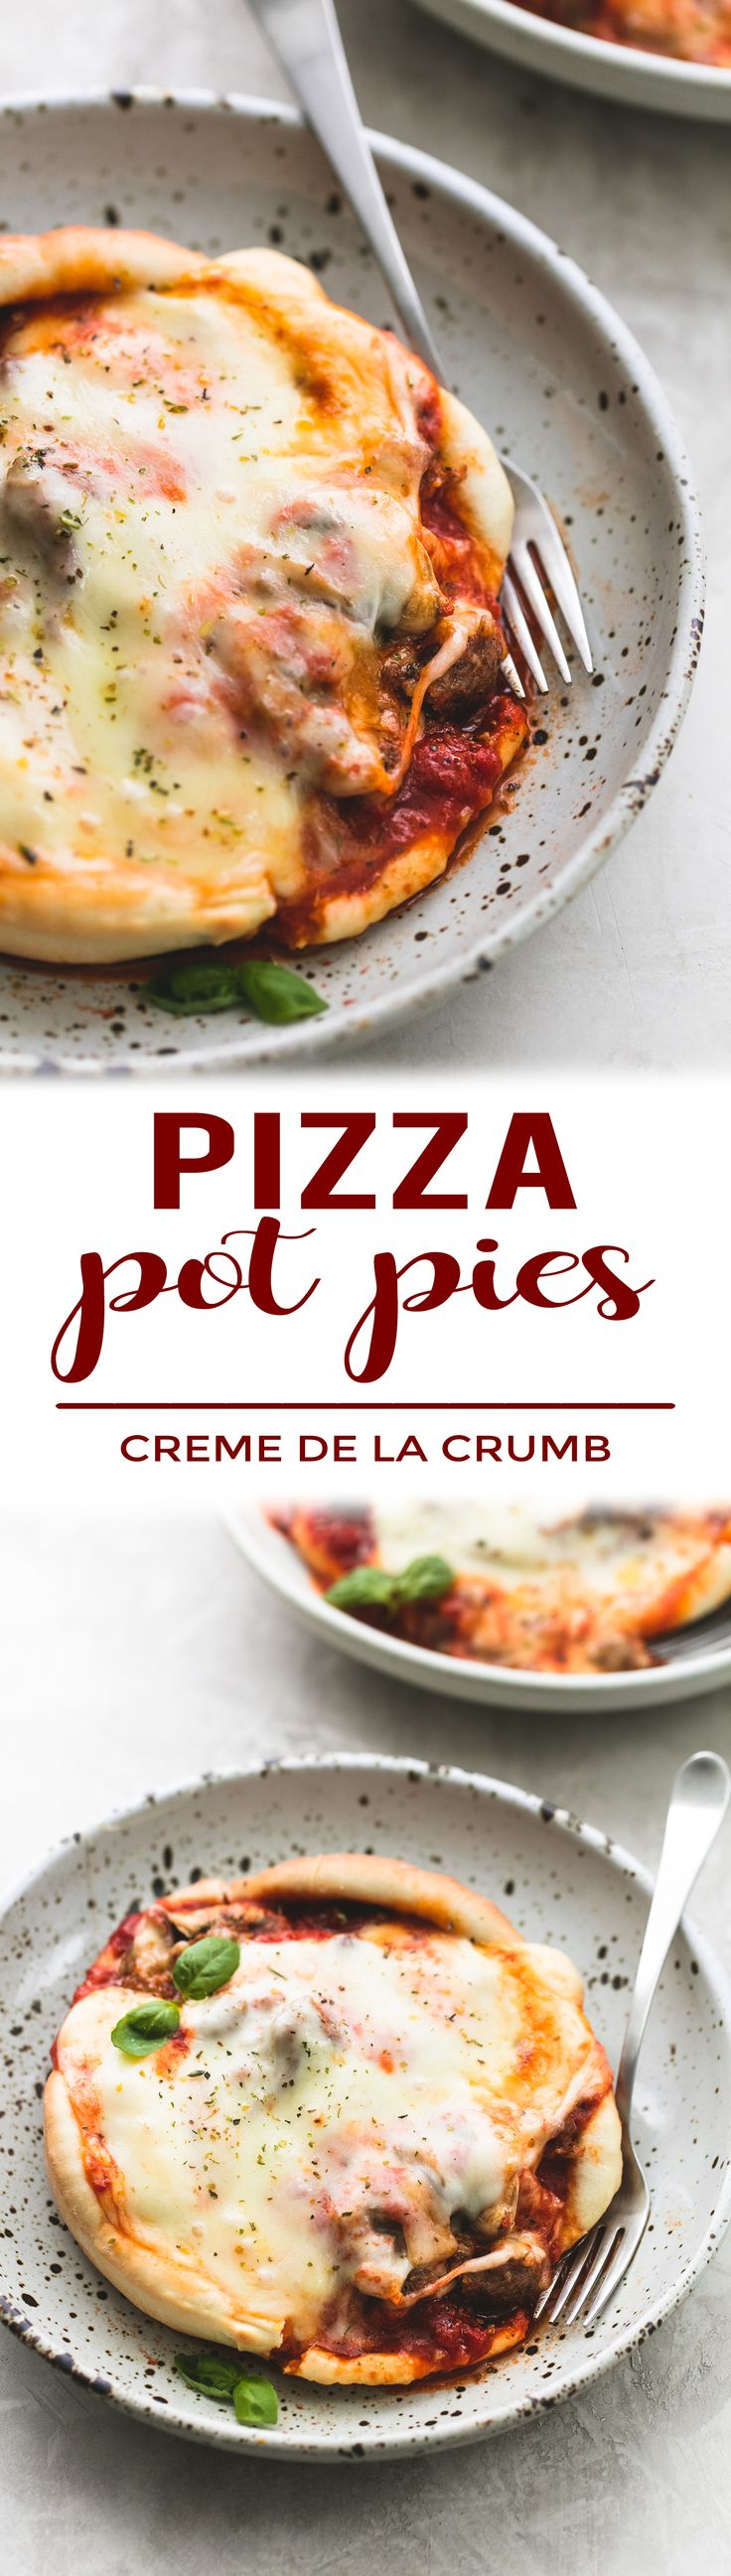 This tasty recipe is a fun and unique twist on 30-Minute Stuffed Crust Pizza! These personal sized pizza pot pies are an easy must-make for pizza lovers! | lecremedelacrumb.com